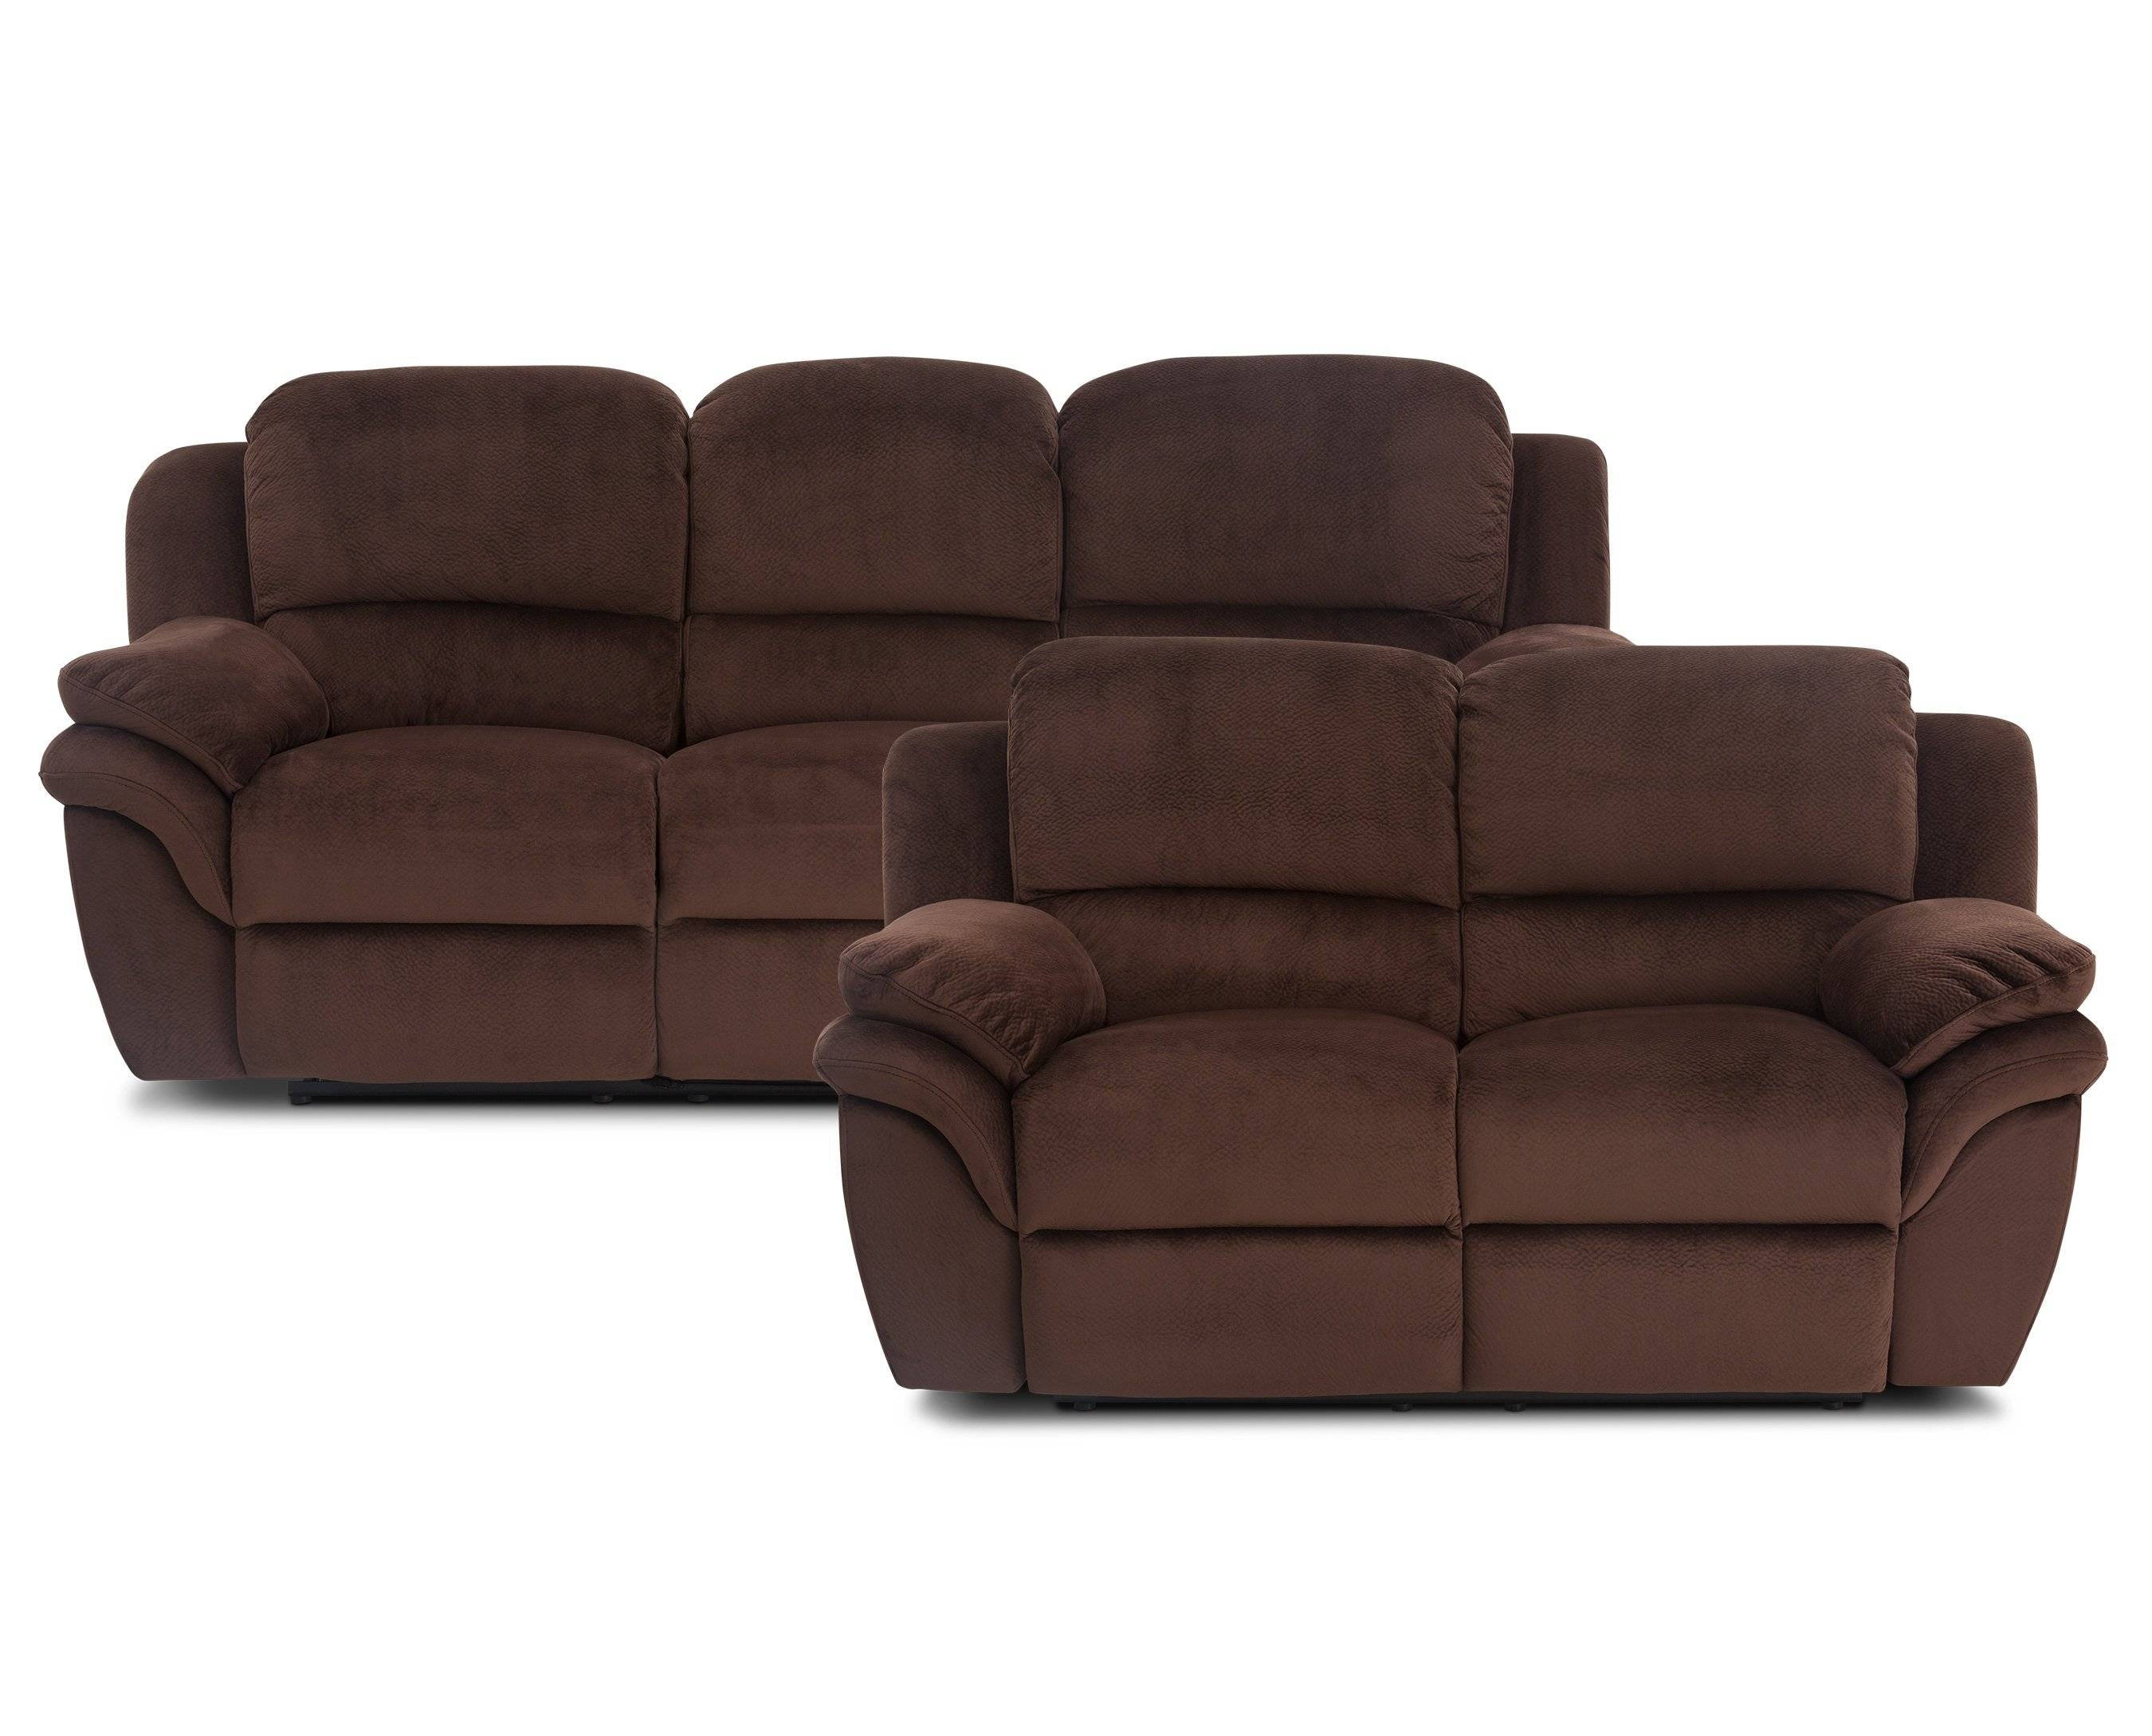 Living Room Furniture, Sofas & Sectionals | Furniture Row within Austin Sectional Sofa (Image 7 of 30)